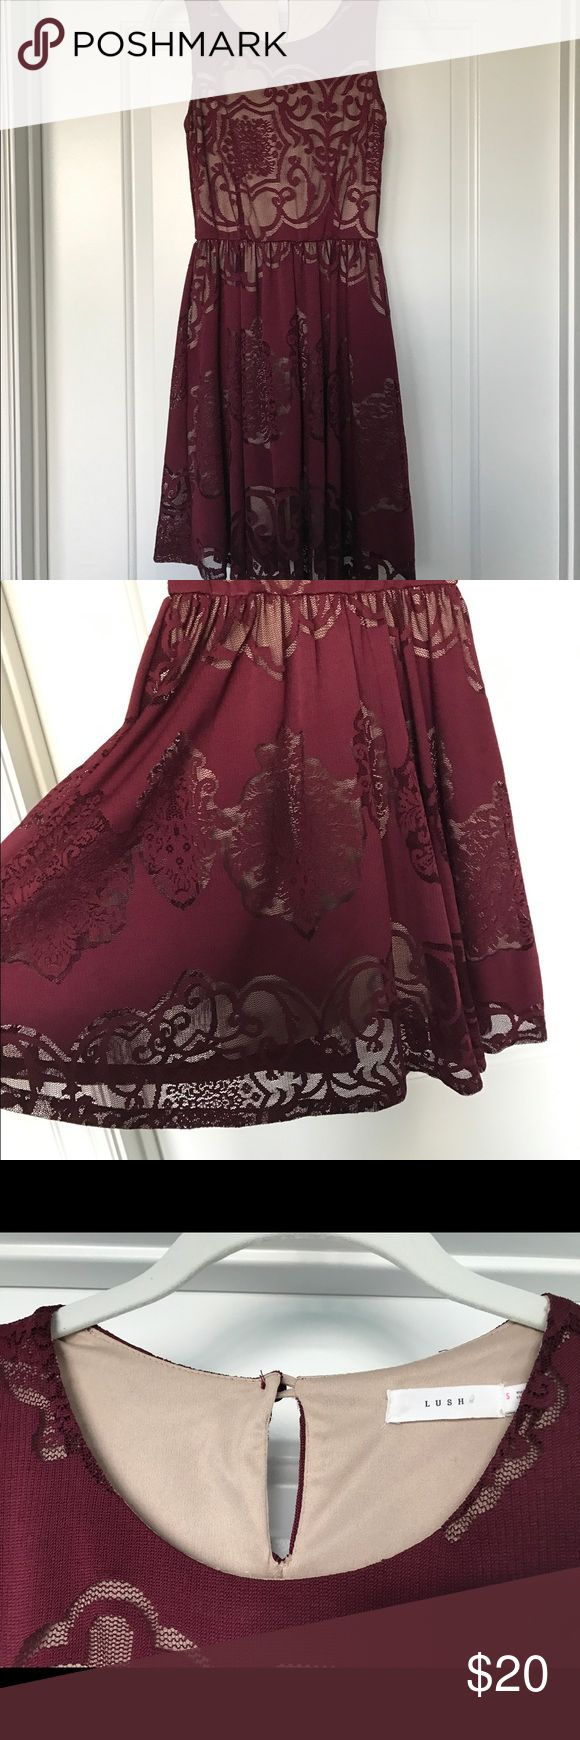 Women's maroon skater dress Lush size S maroon skater dress with nude lining to show medallion print all over dress. Keyhole button I'm back. Lush Dresses Midi